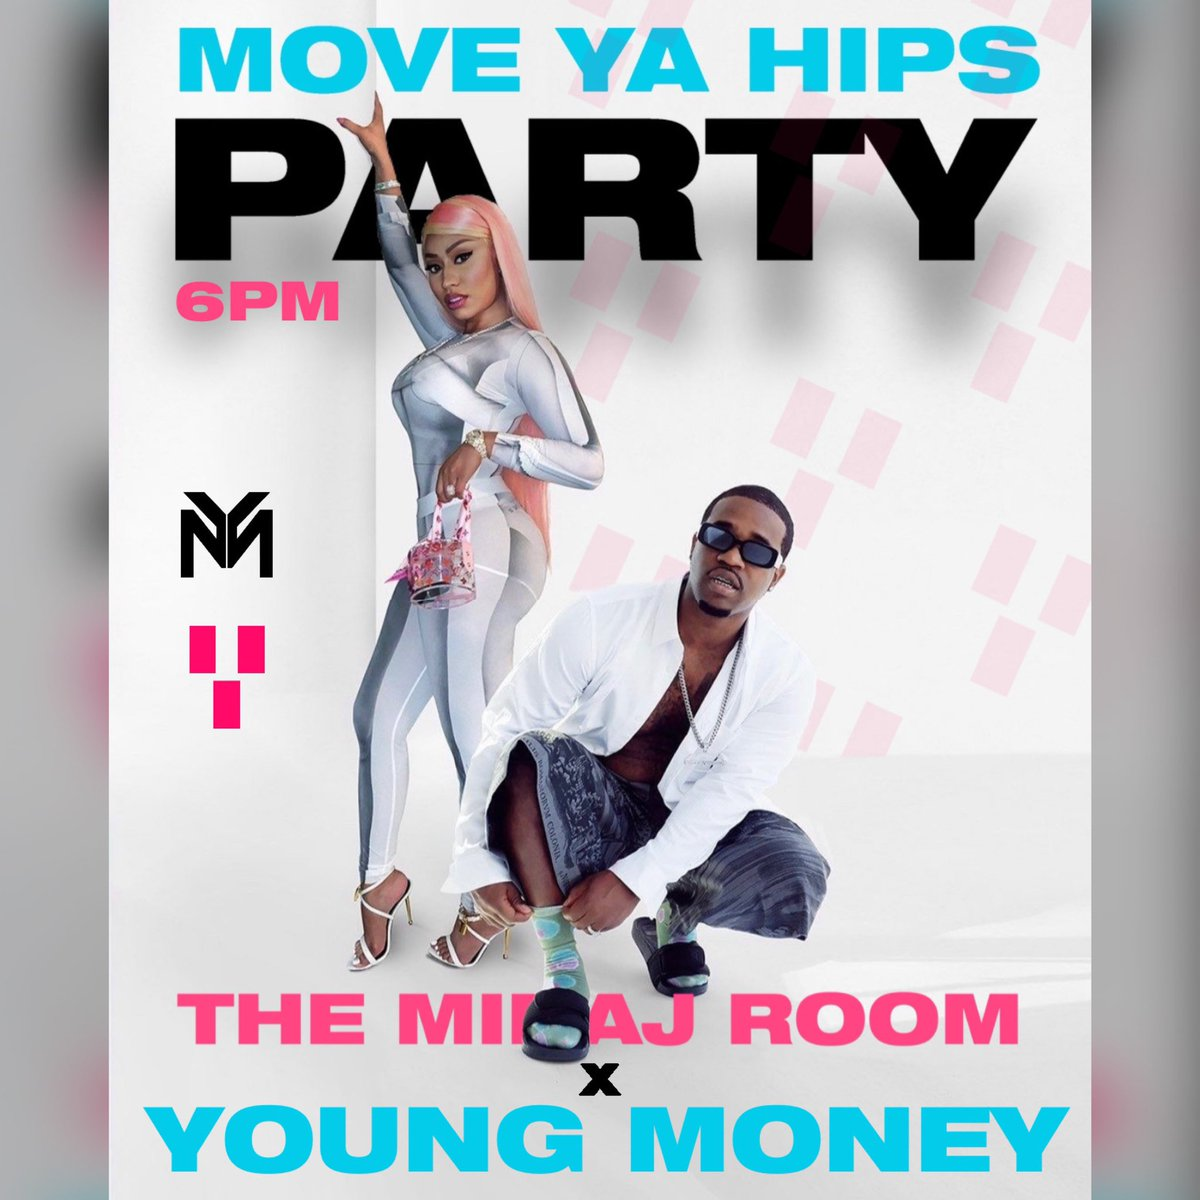 "#MoveYaHips featuring @nickiminaj @asapferg & @madeintyo is one of the hottest songs out right now! 🔥🔥😎@theminajroom x @youngmoney are hosting a Global Streaming & Buying Party at 6PM EST! 🎧 Use phrase ""BUY MYH"" on Twitter"" to trend at 6:00PM! GET READY! Spread the word!"